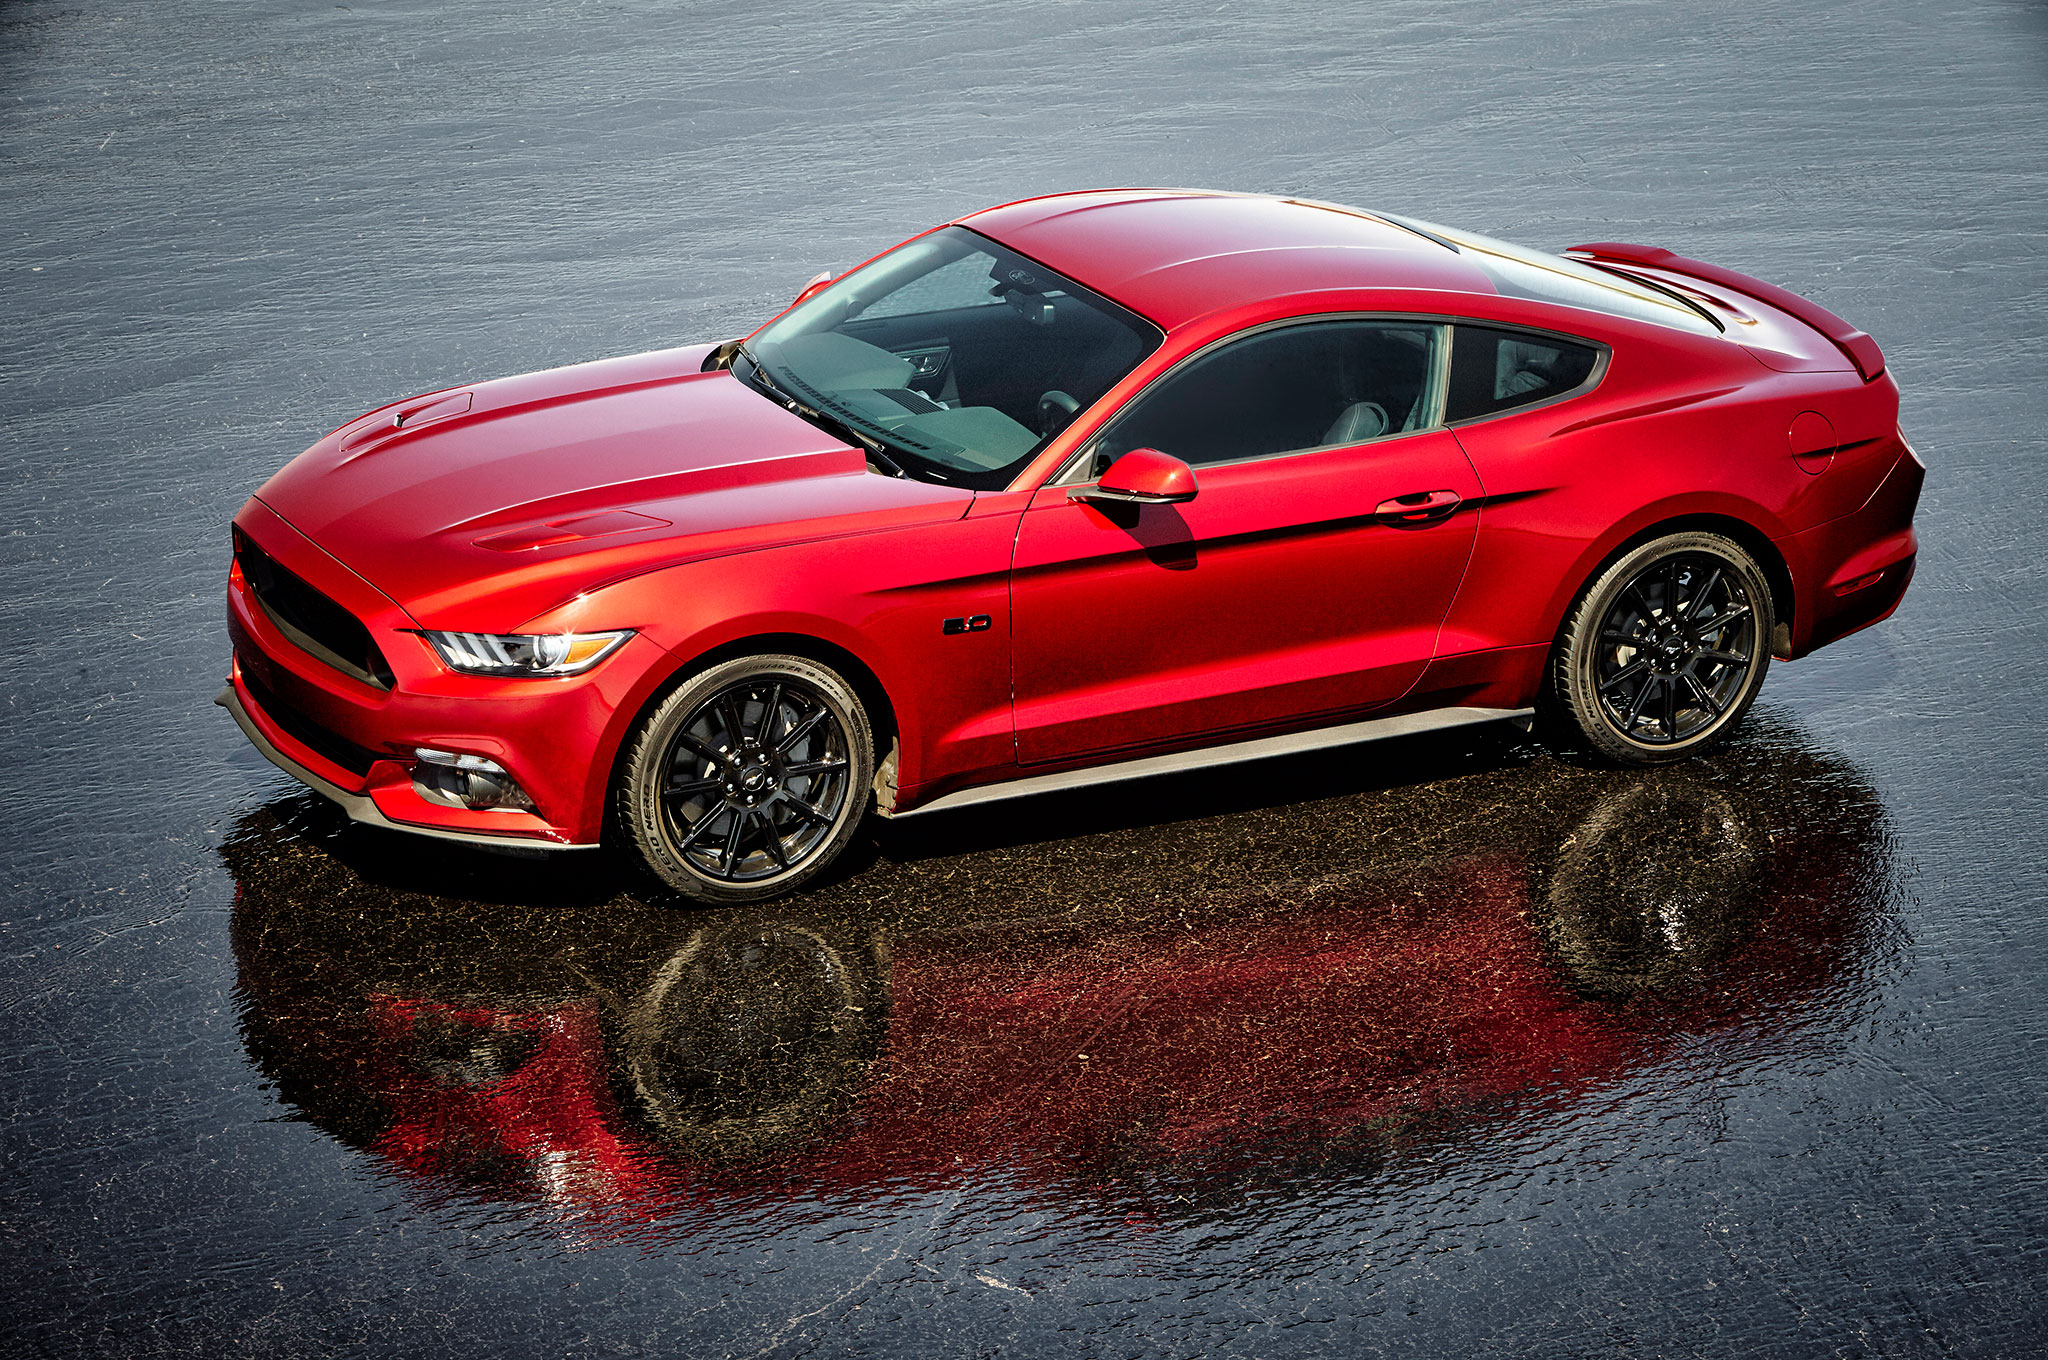 Mustang Vs. Camaro Vs. Challenger: Which Automaker is Winning the ...